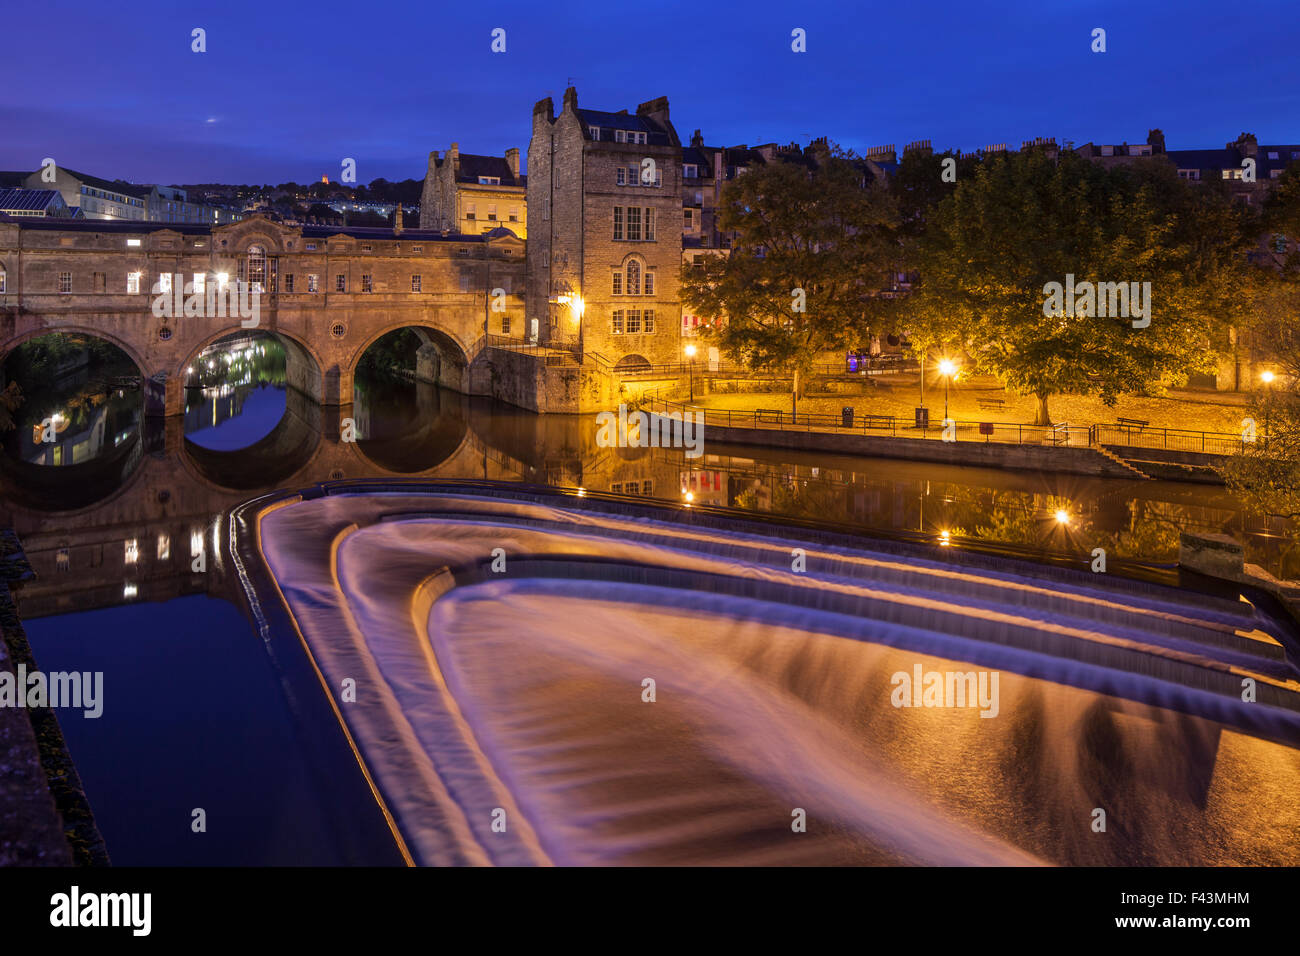 Pulteney Bridge and the weir on river Avon in Bath, Somerset, UK. - Stock Image